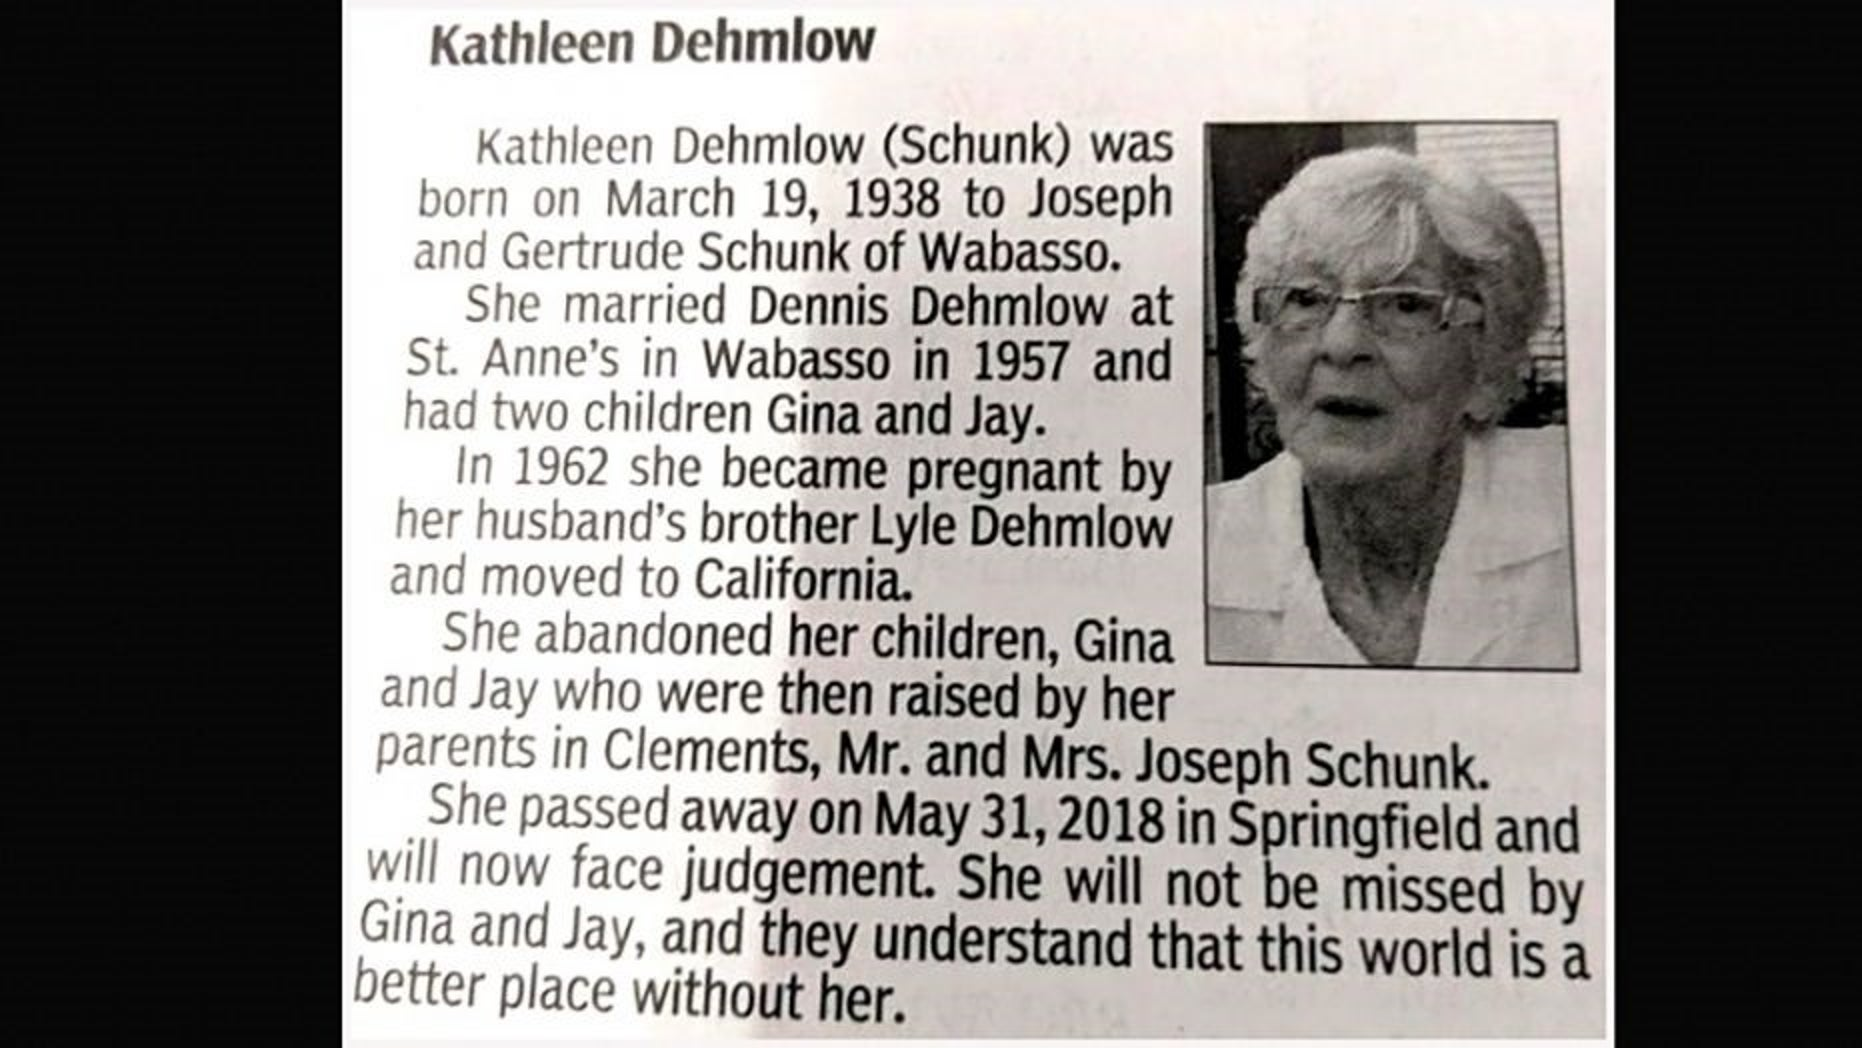 A seemingly normal obituary took a dark turn and has now gone viral.